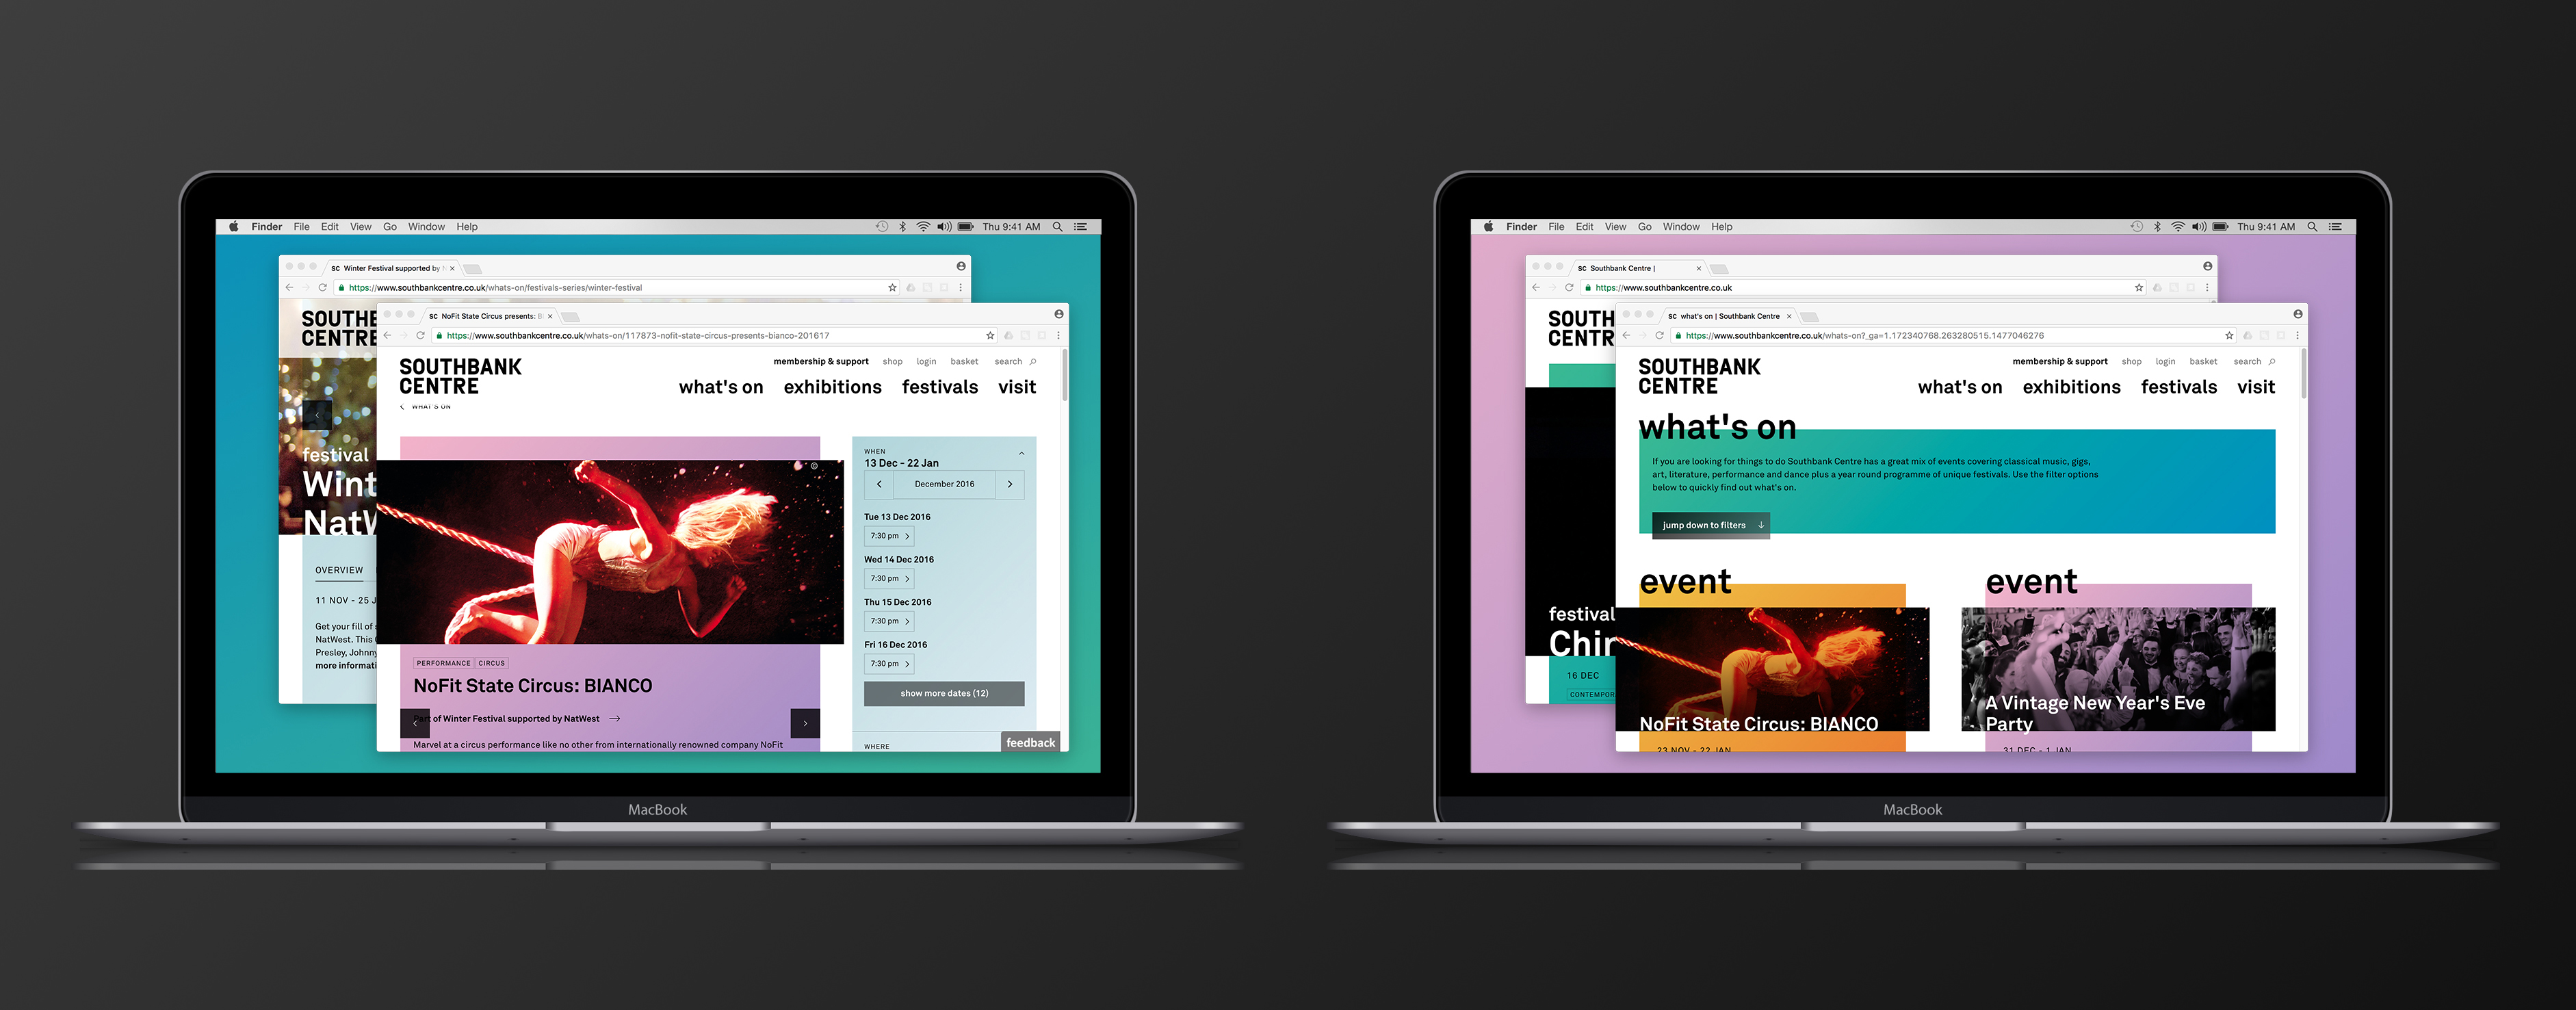 Southbank Centre's homepage